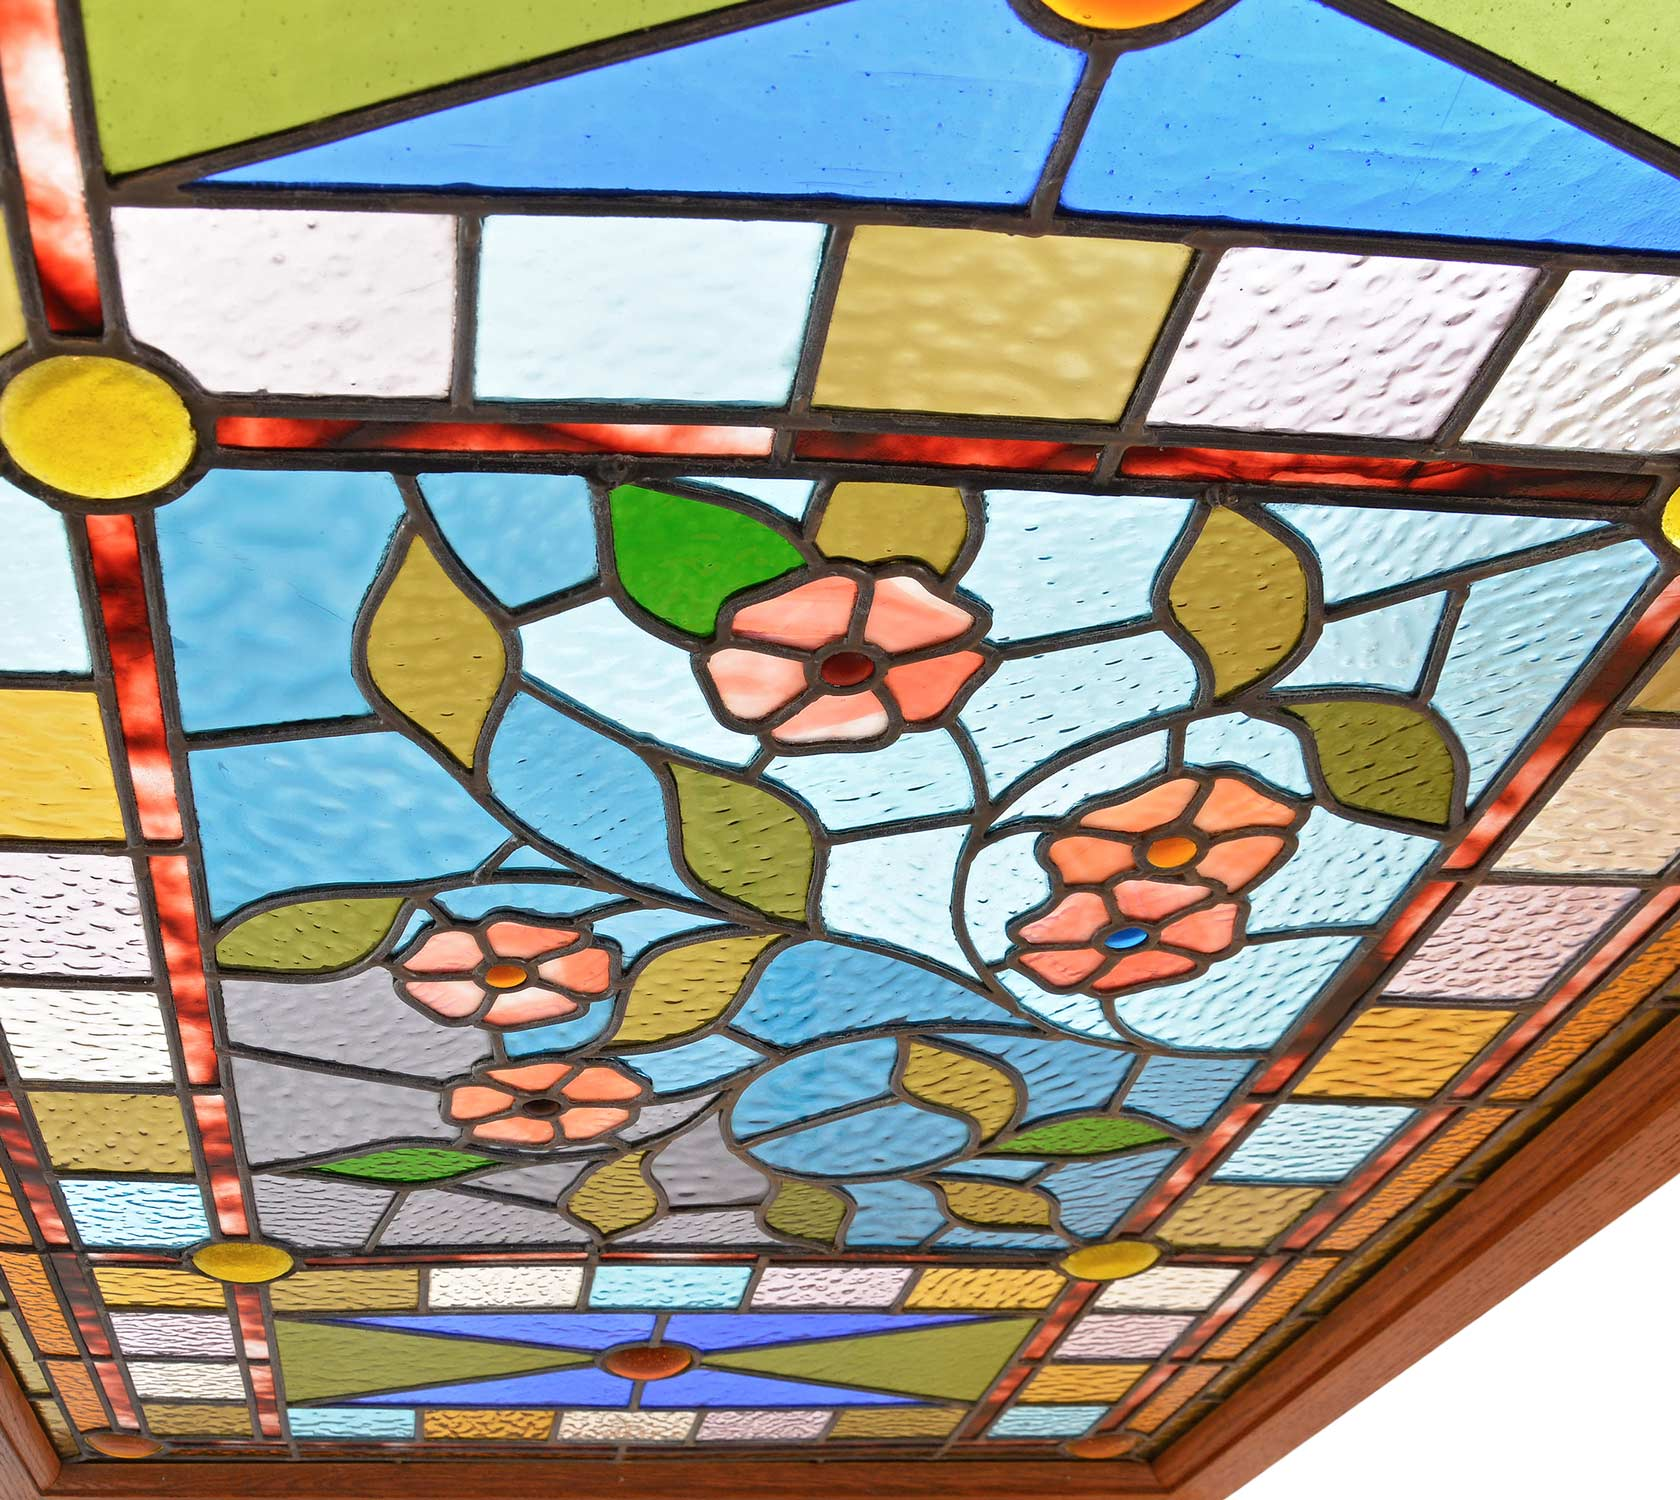 46377-aesthetic-victorian-floral-window-angle-detail.jpg